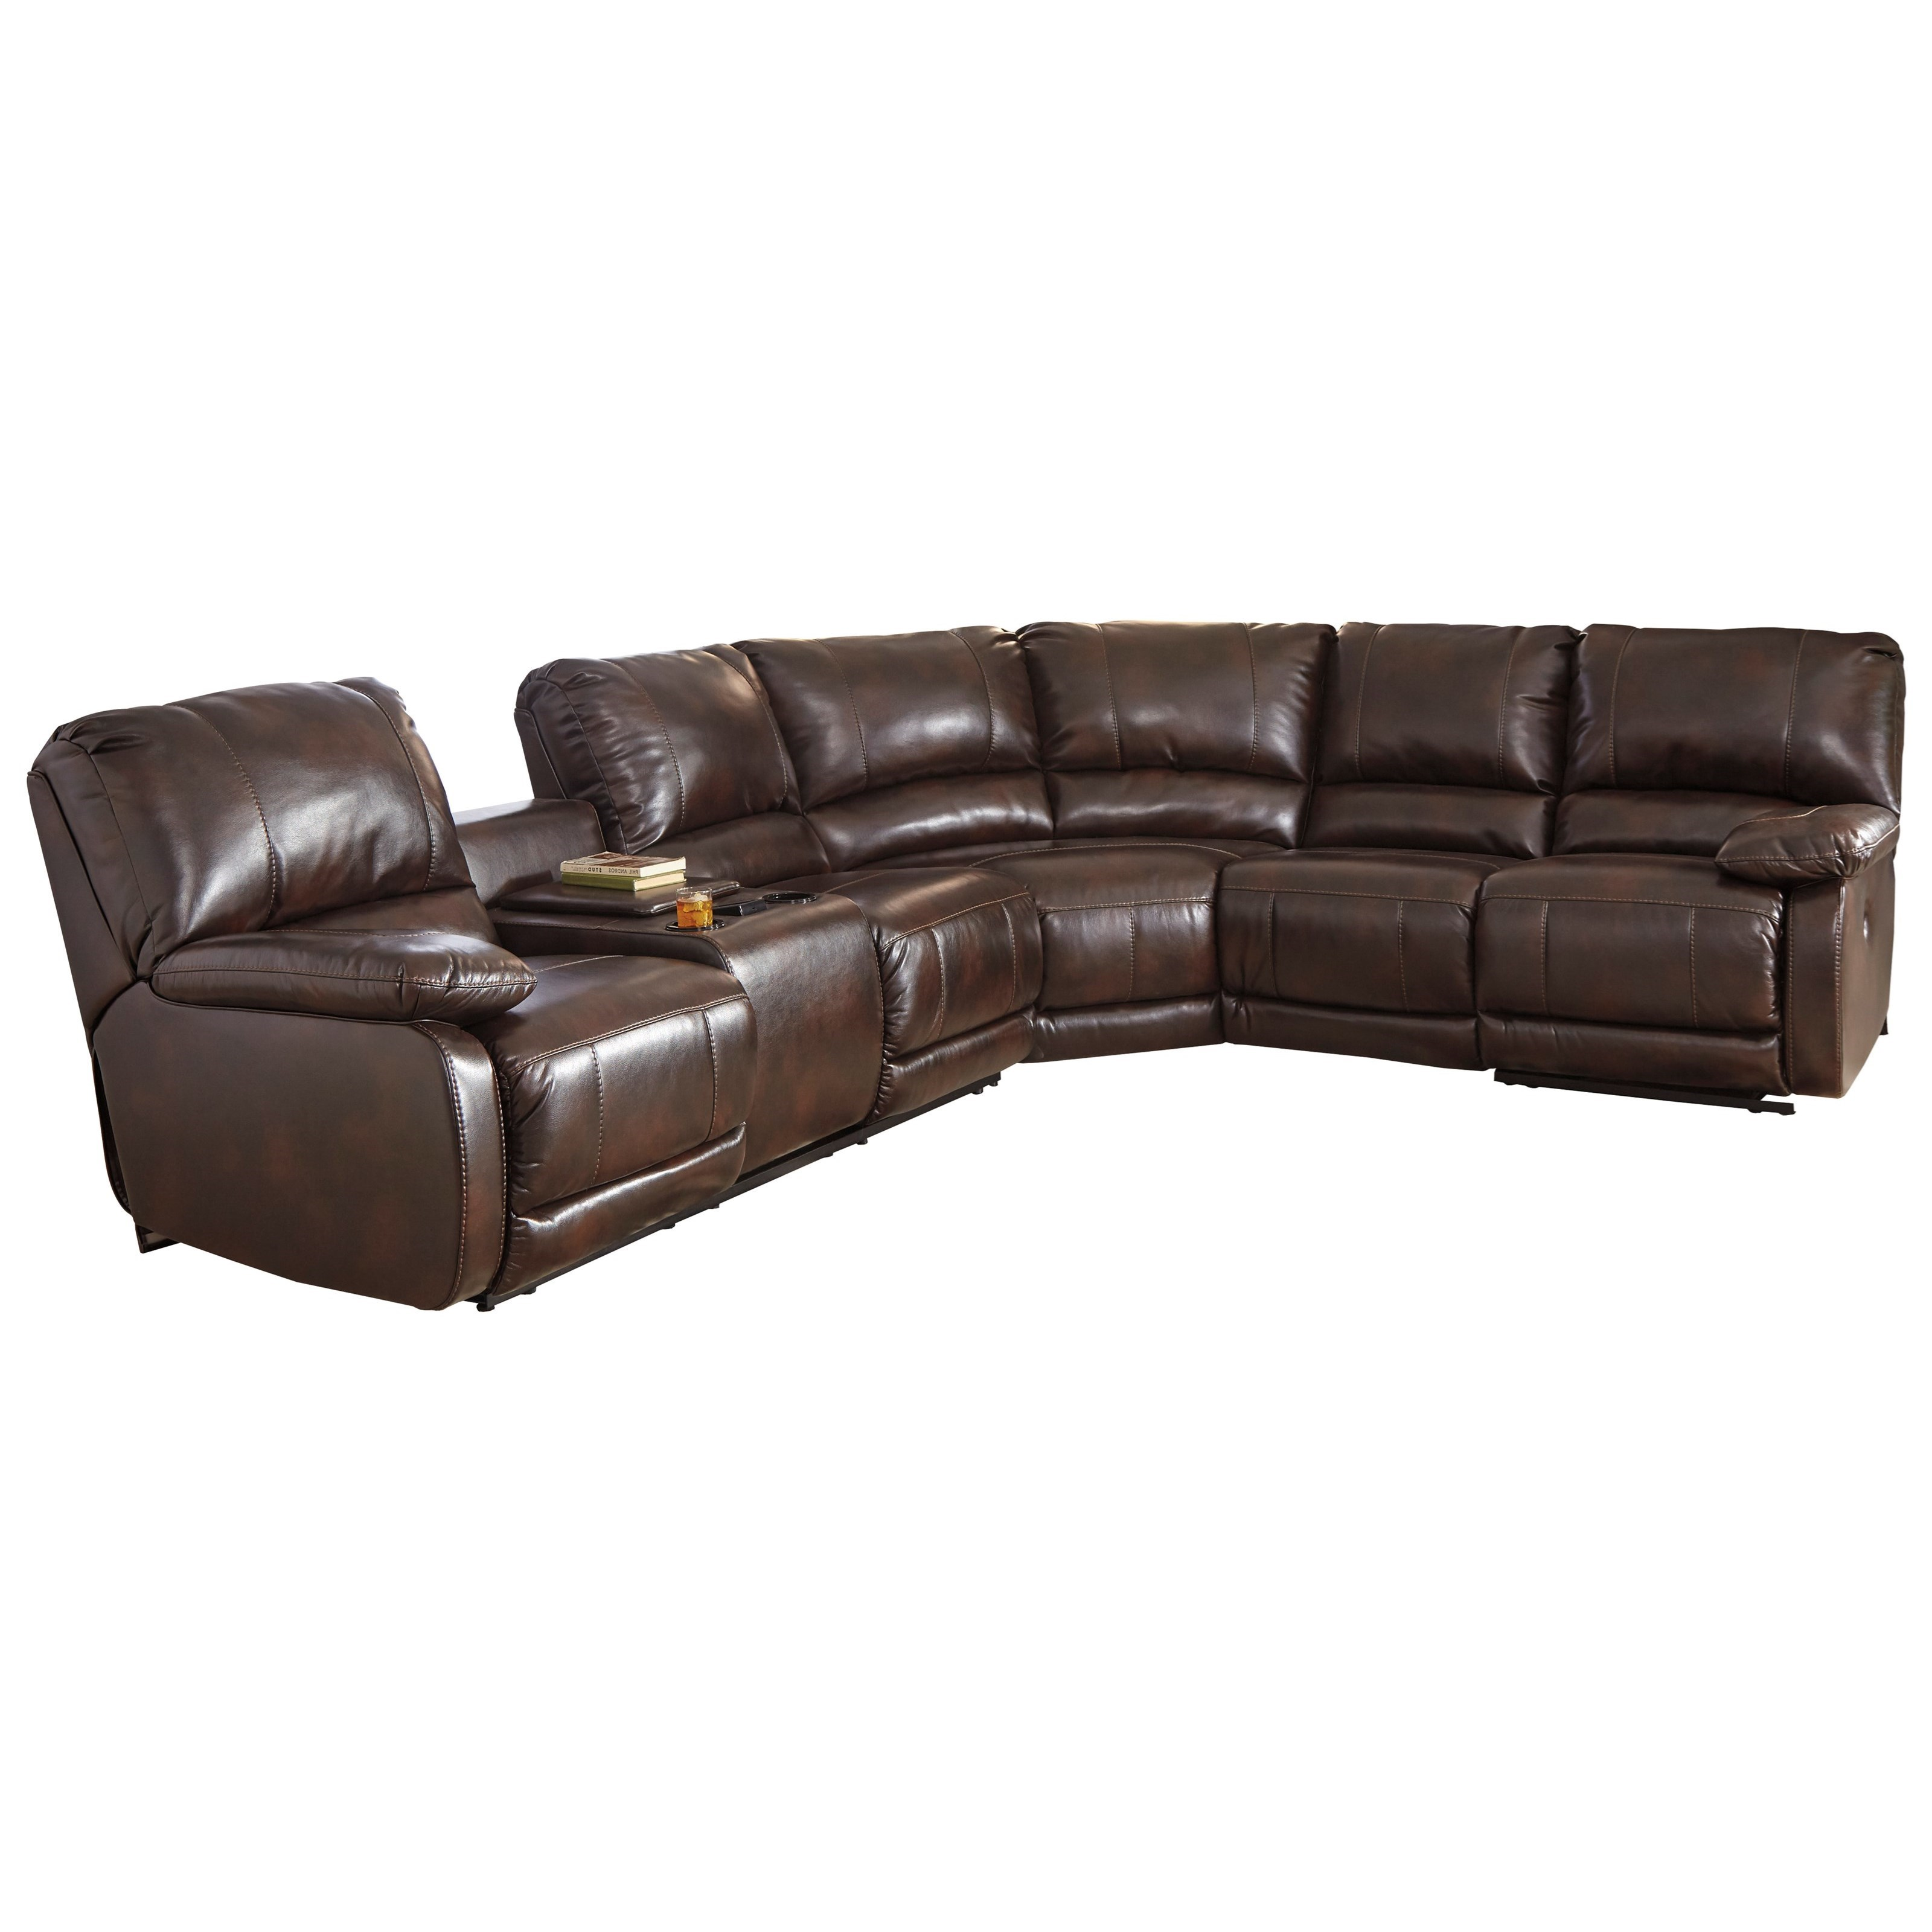 power reclining sofa with cup holders old set in pune on olx sectional massage heat and